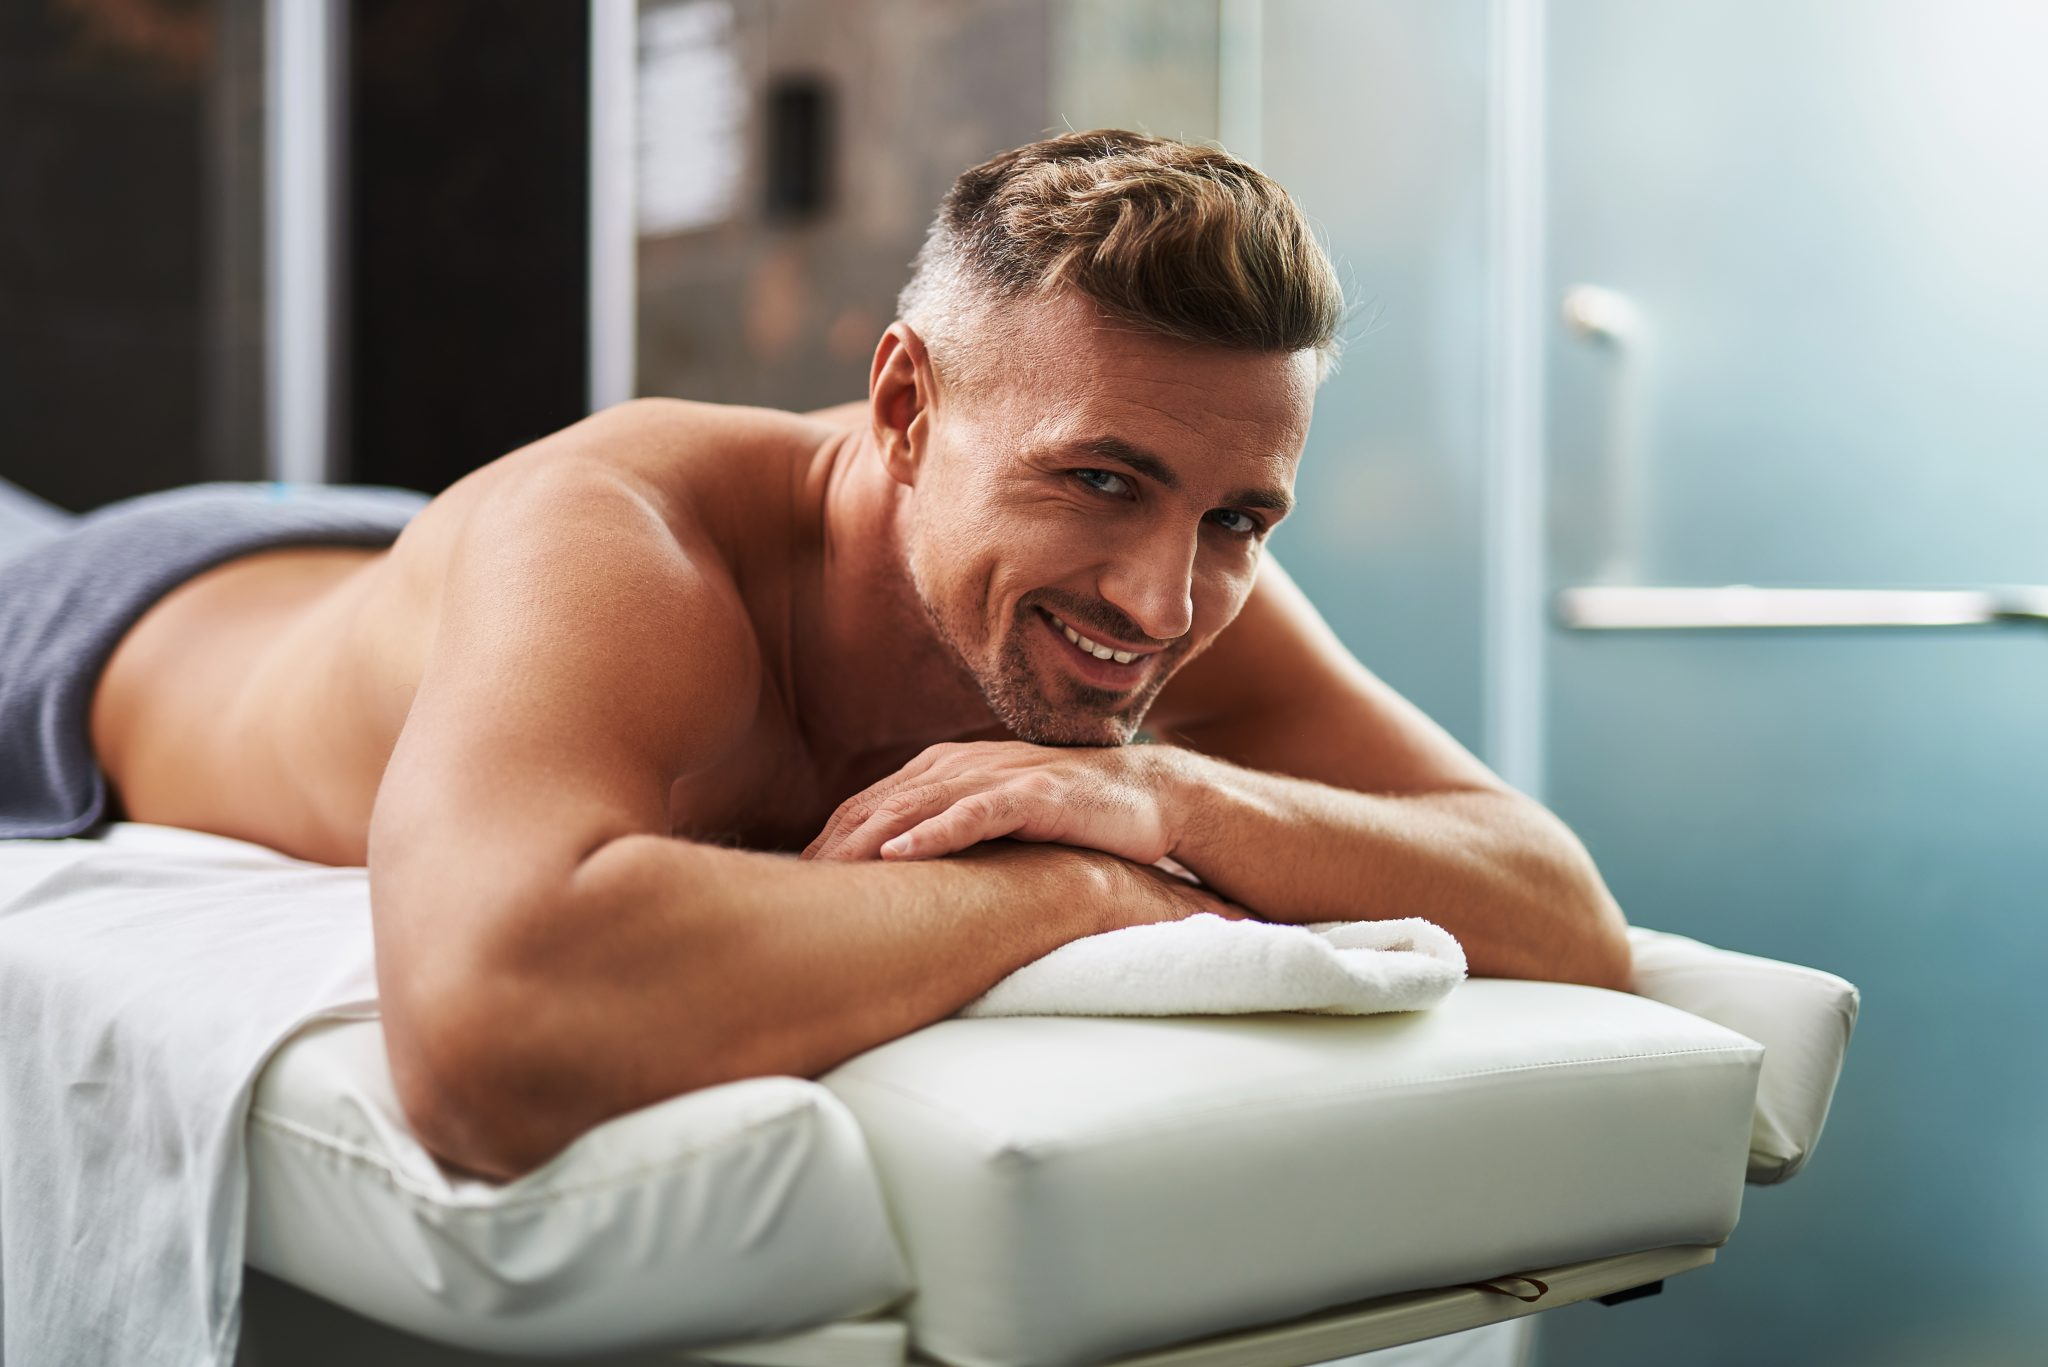 What happens when you book a gay erotic massage? - Means Happy